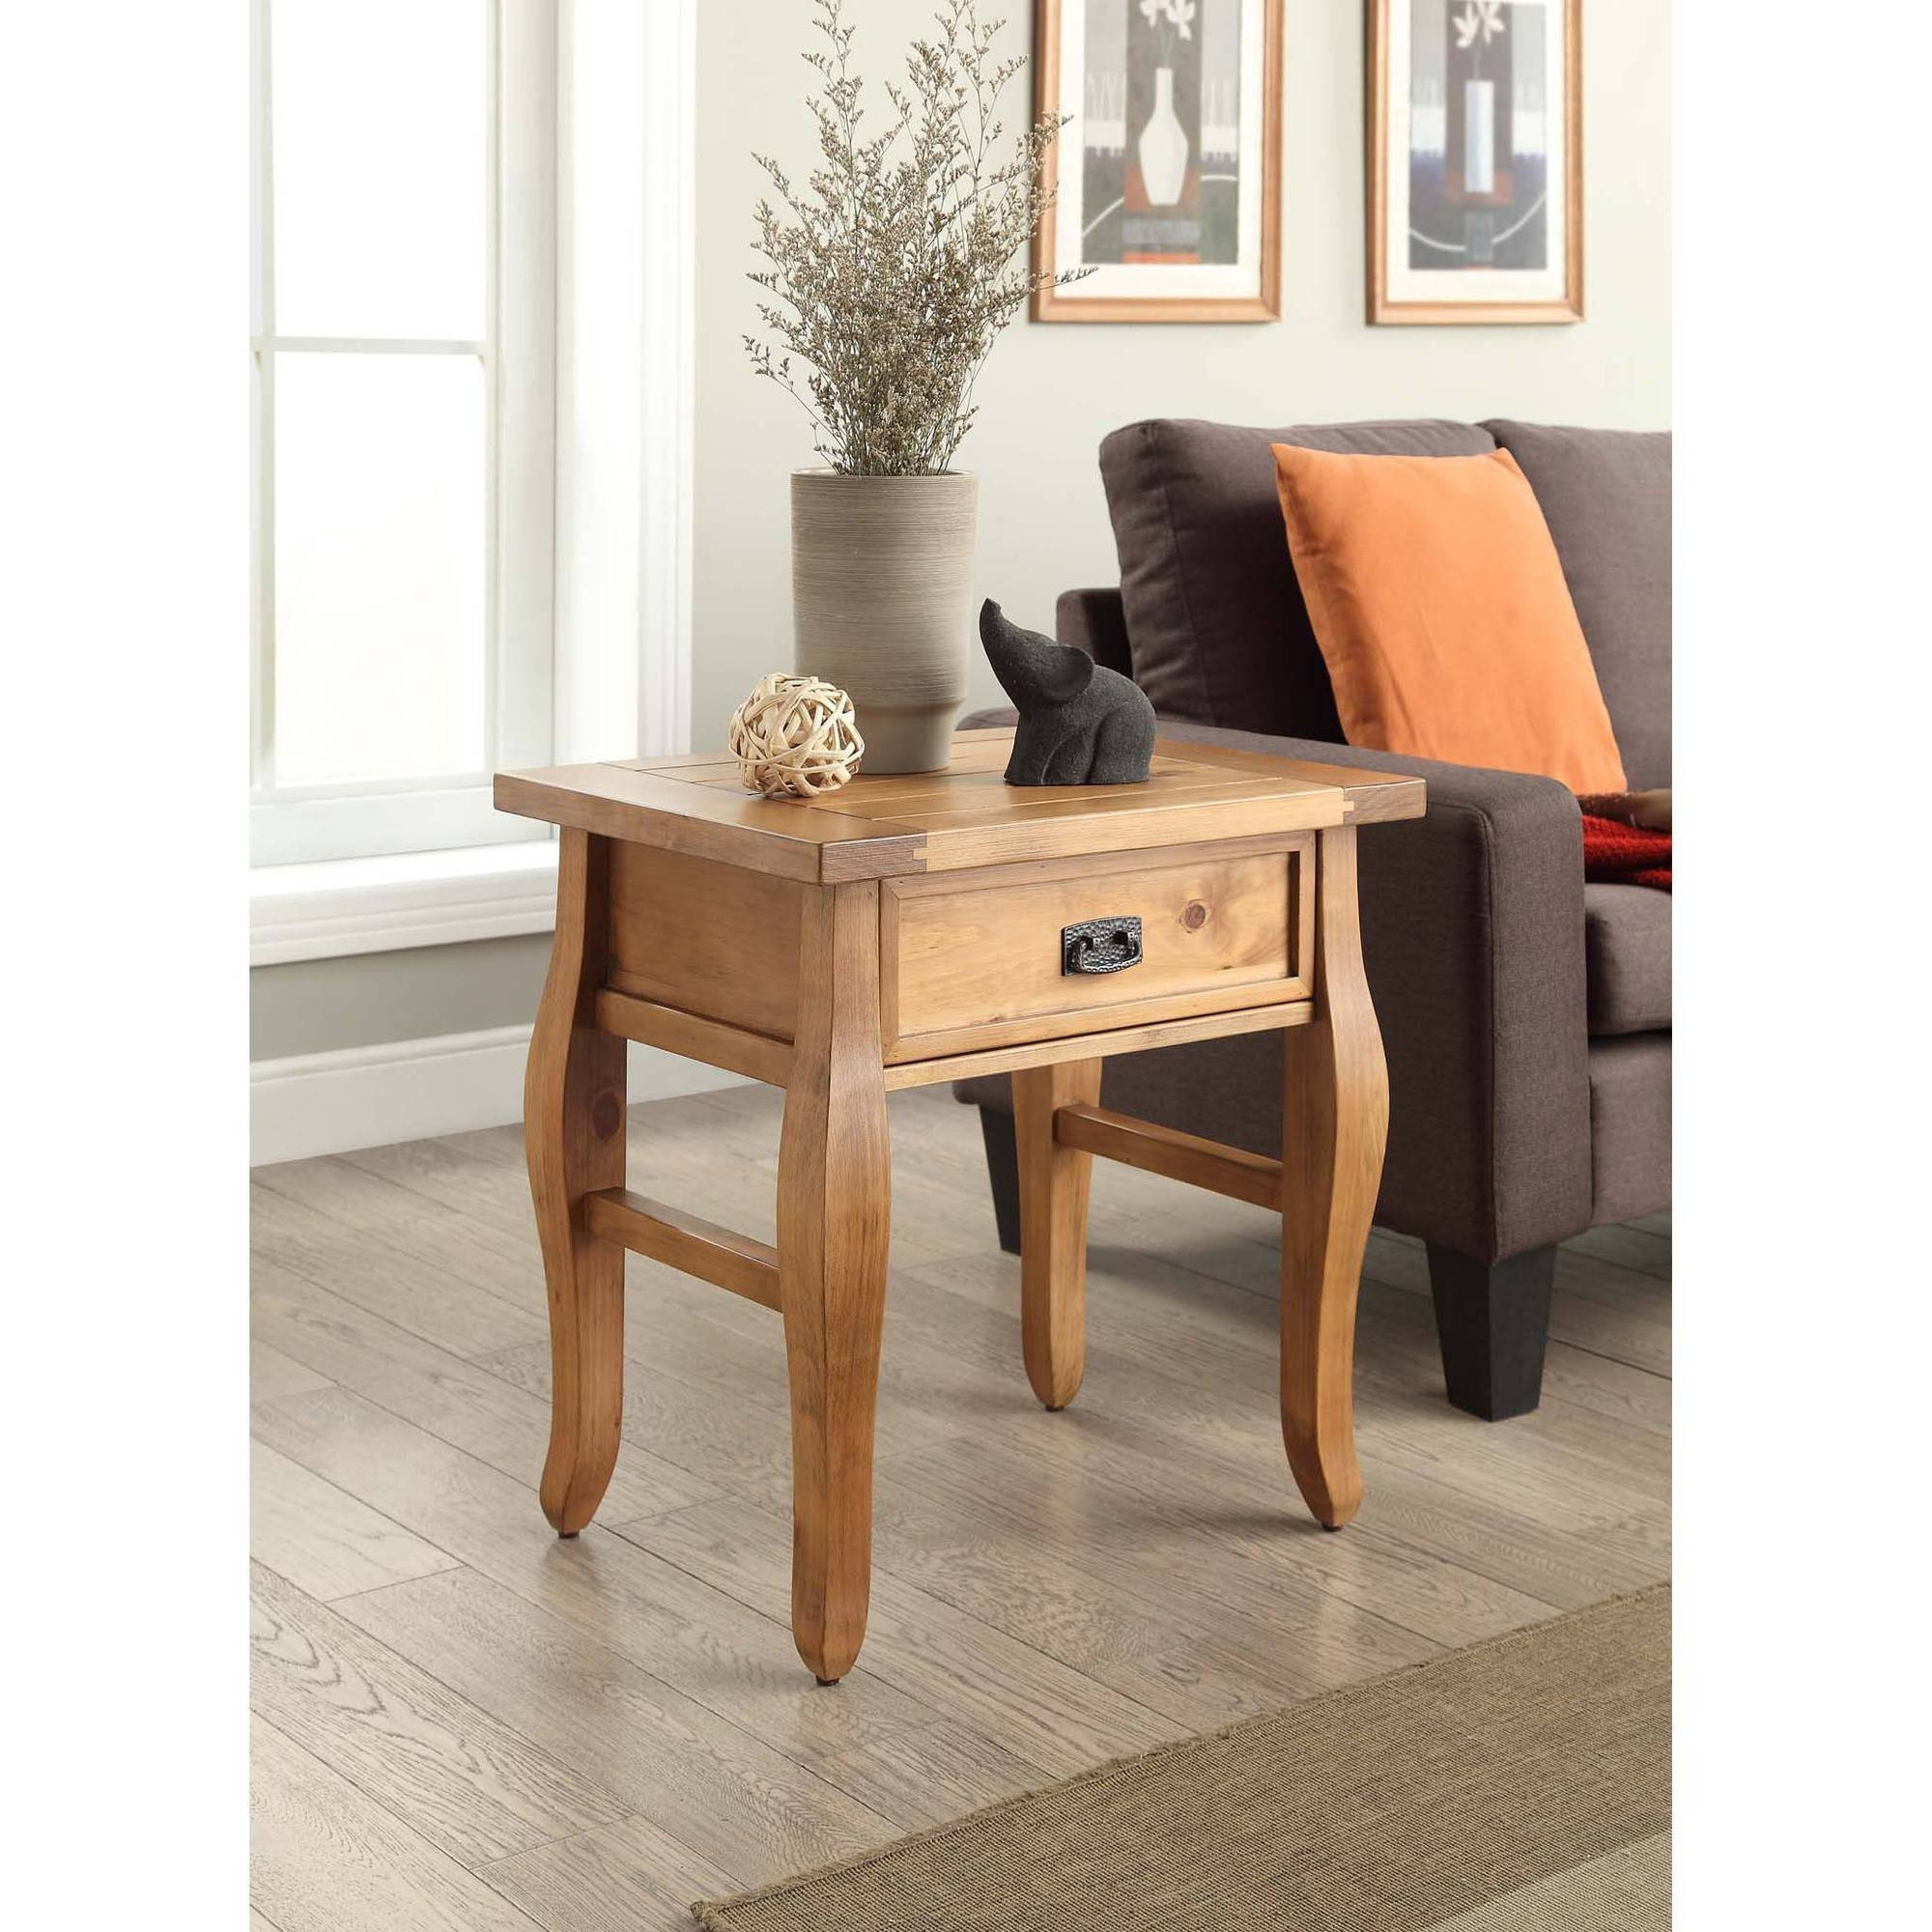 Linon Santa Fe End Table, Antique Finish, 24 Inches Tall – Walmart For Most Recently Released Santa Fe Coffee Tables (View 19 of 20)